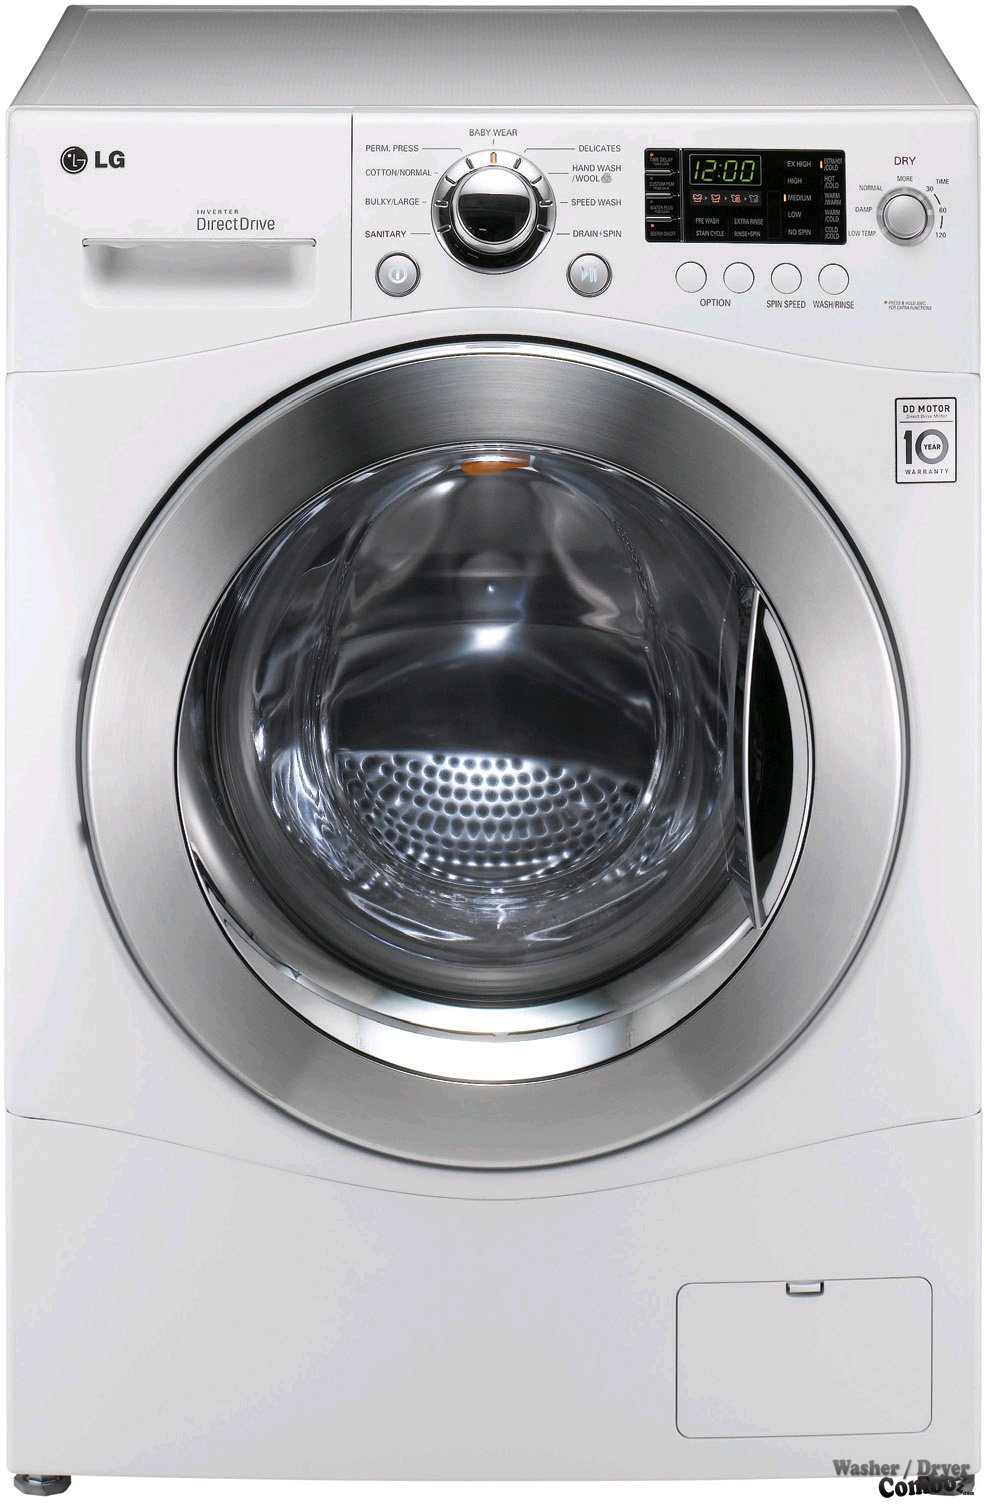 Lg all in one washer and dryer reviews - Lg Wm3455hw Front